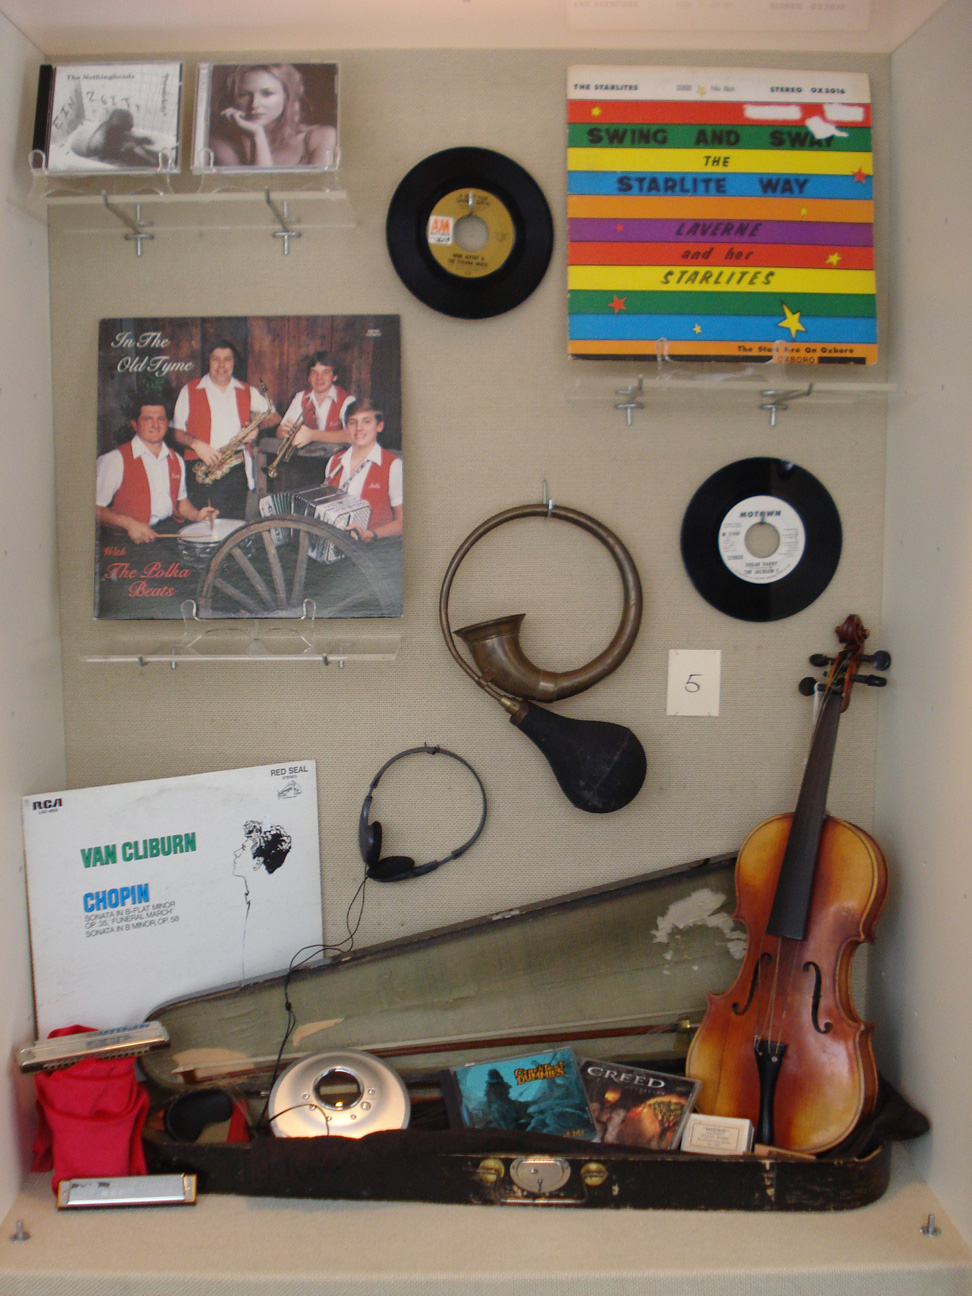 Albums, CDs, and Instruments